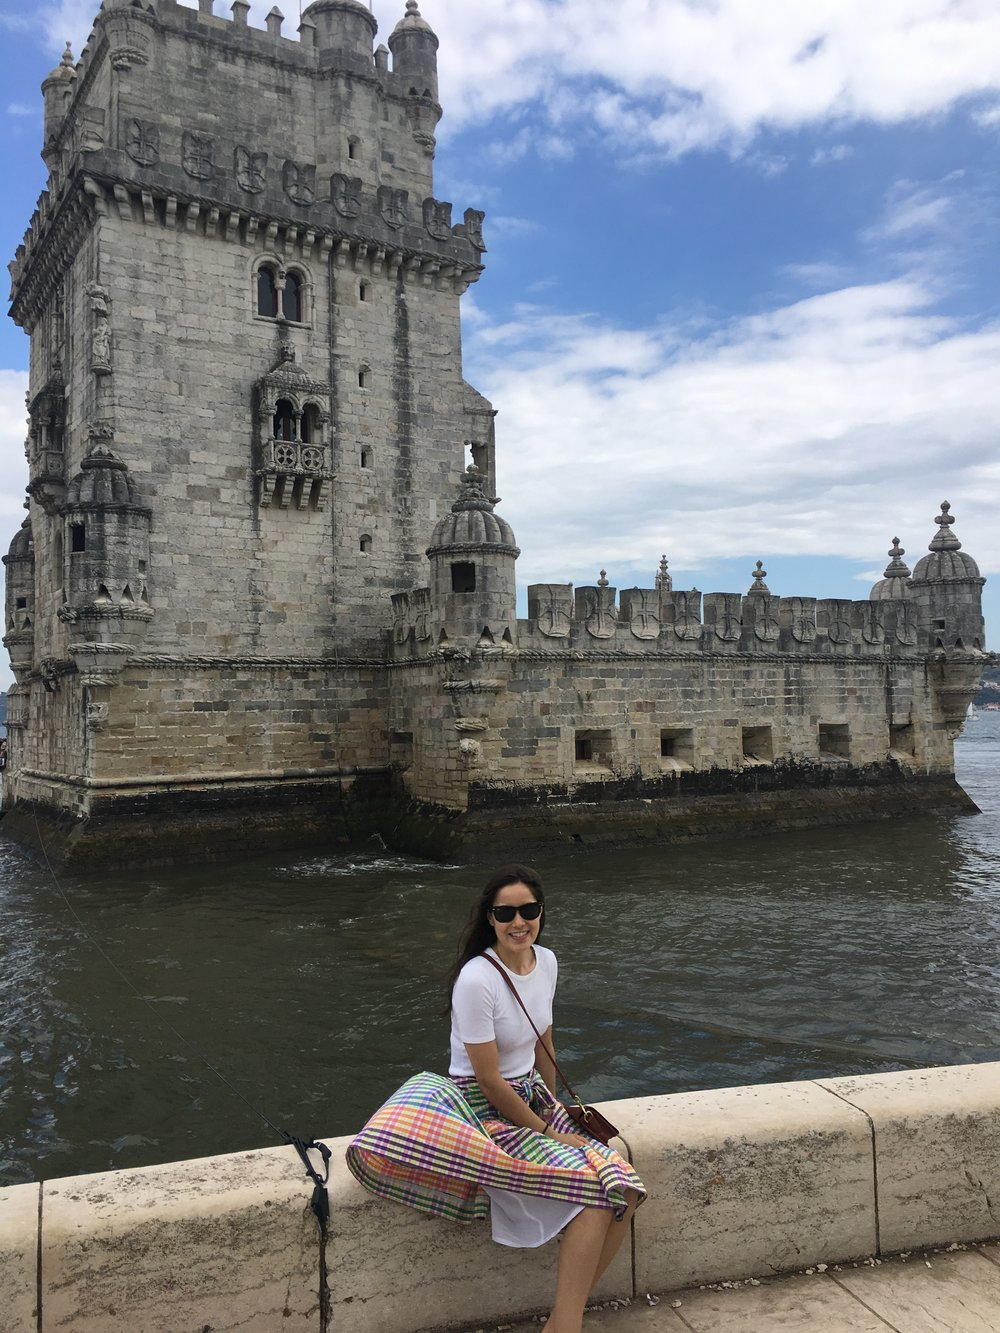 outside the belém tower